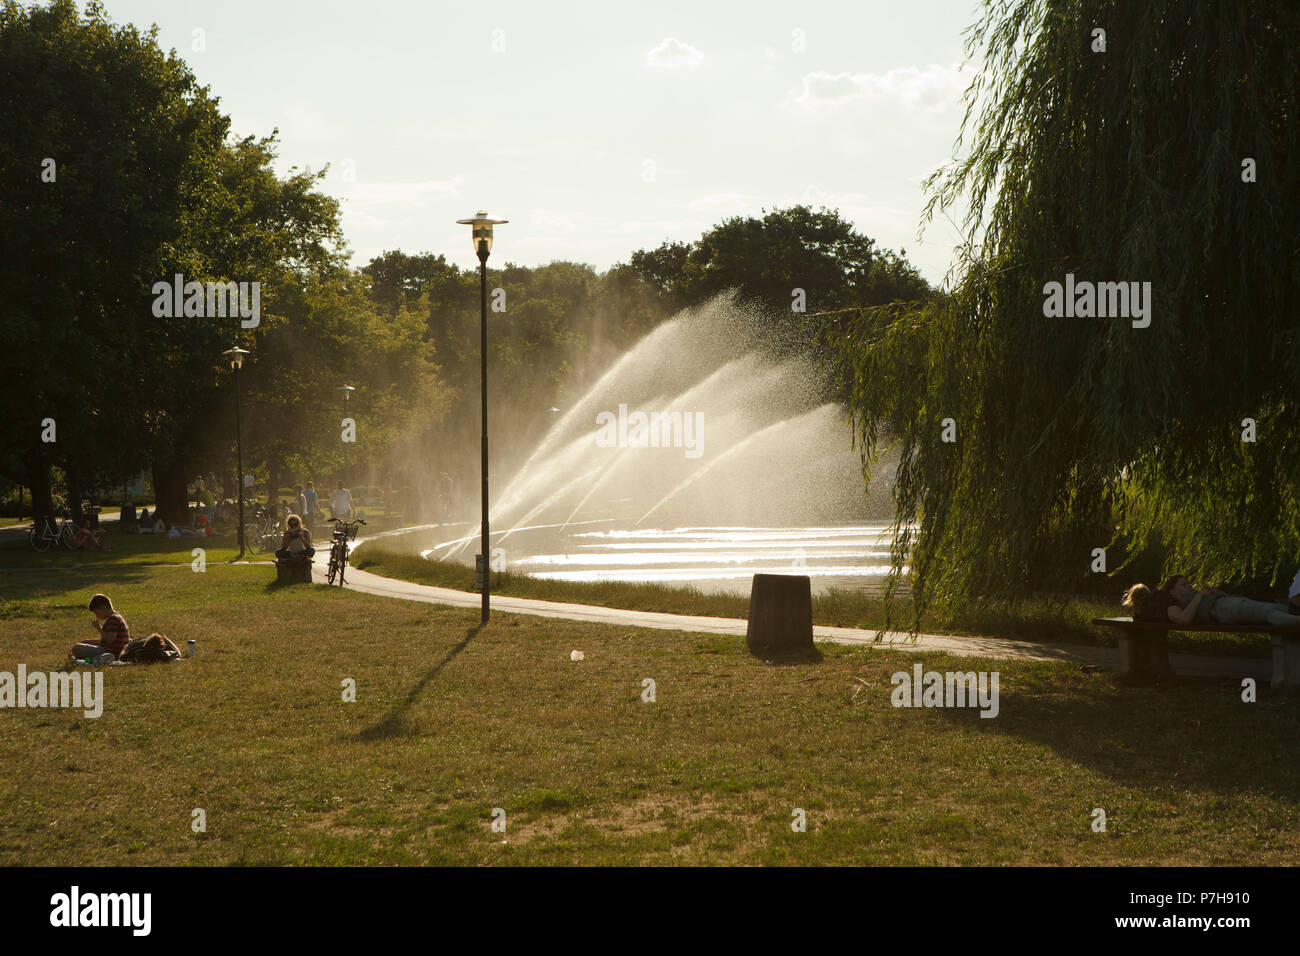 hot day in city park somewhere at central Europe, june - Stock Image